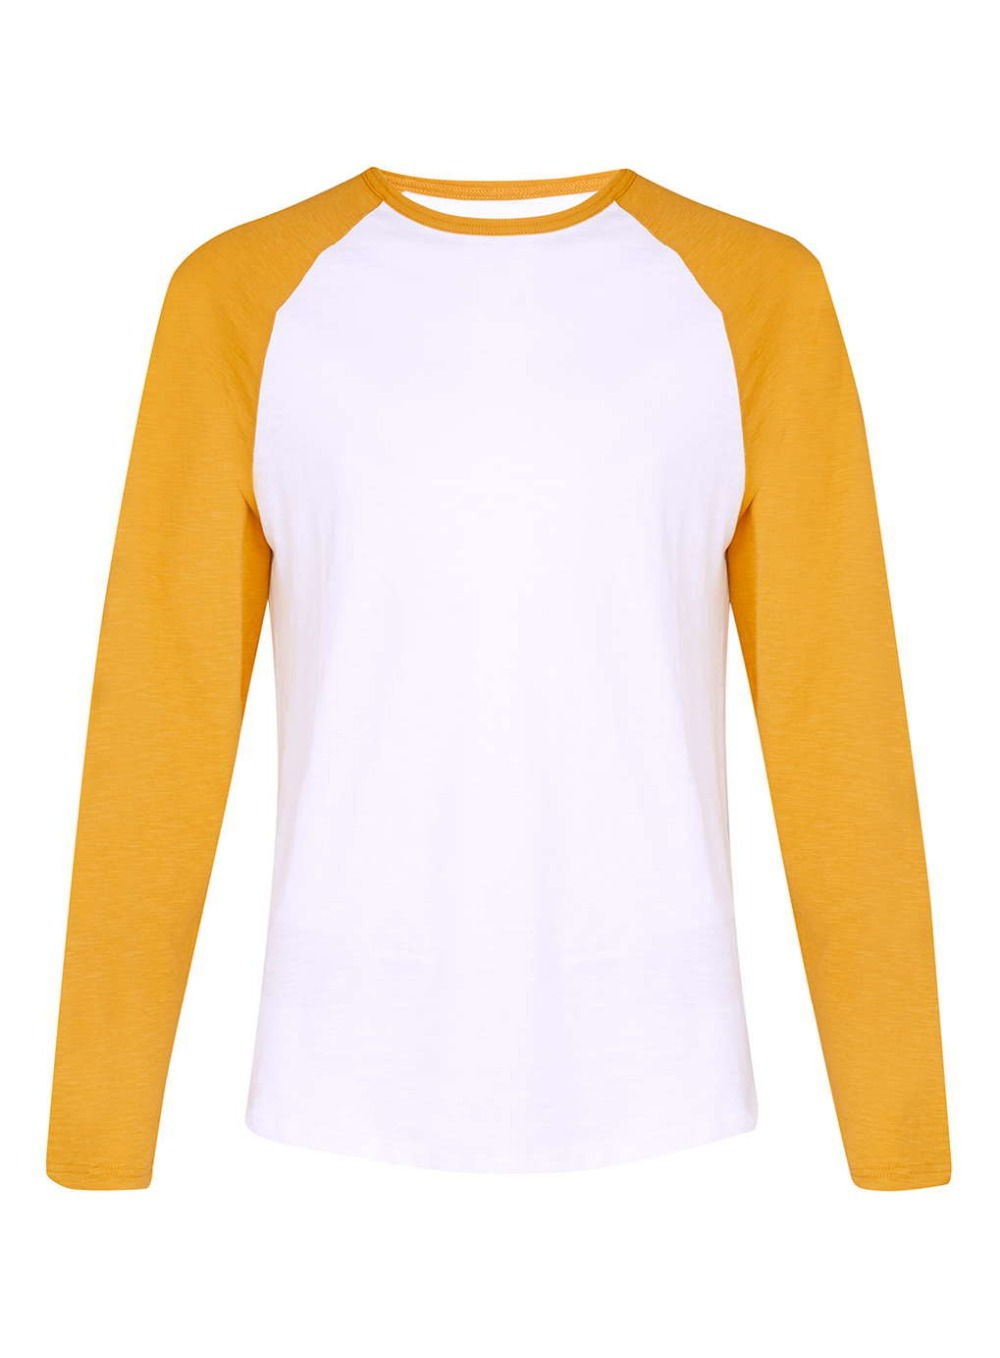 Yellow White Slub Long Sleeve Raglan Men Basic Plain Men T